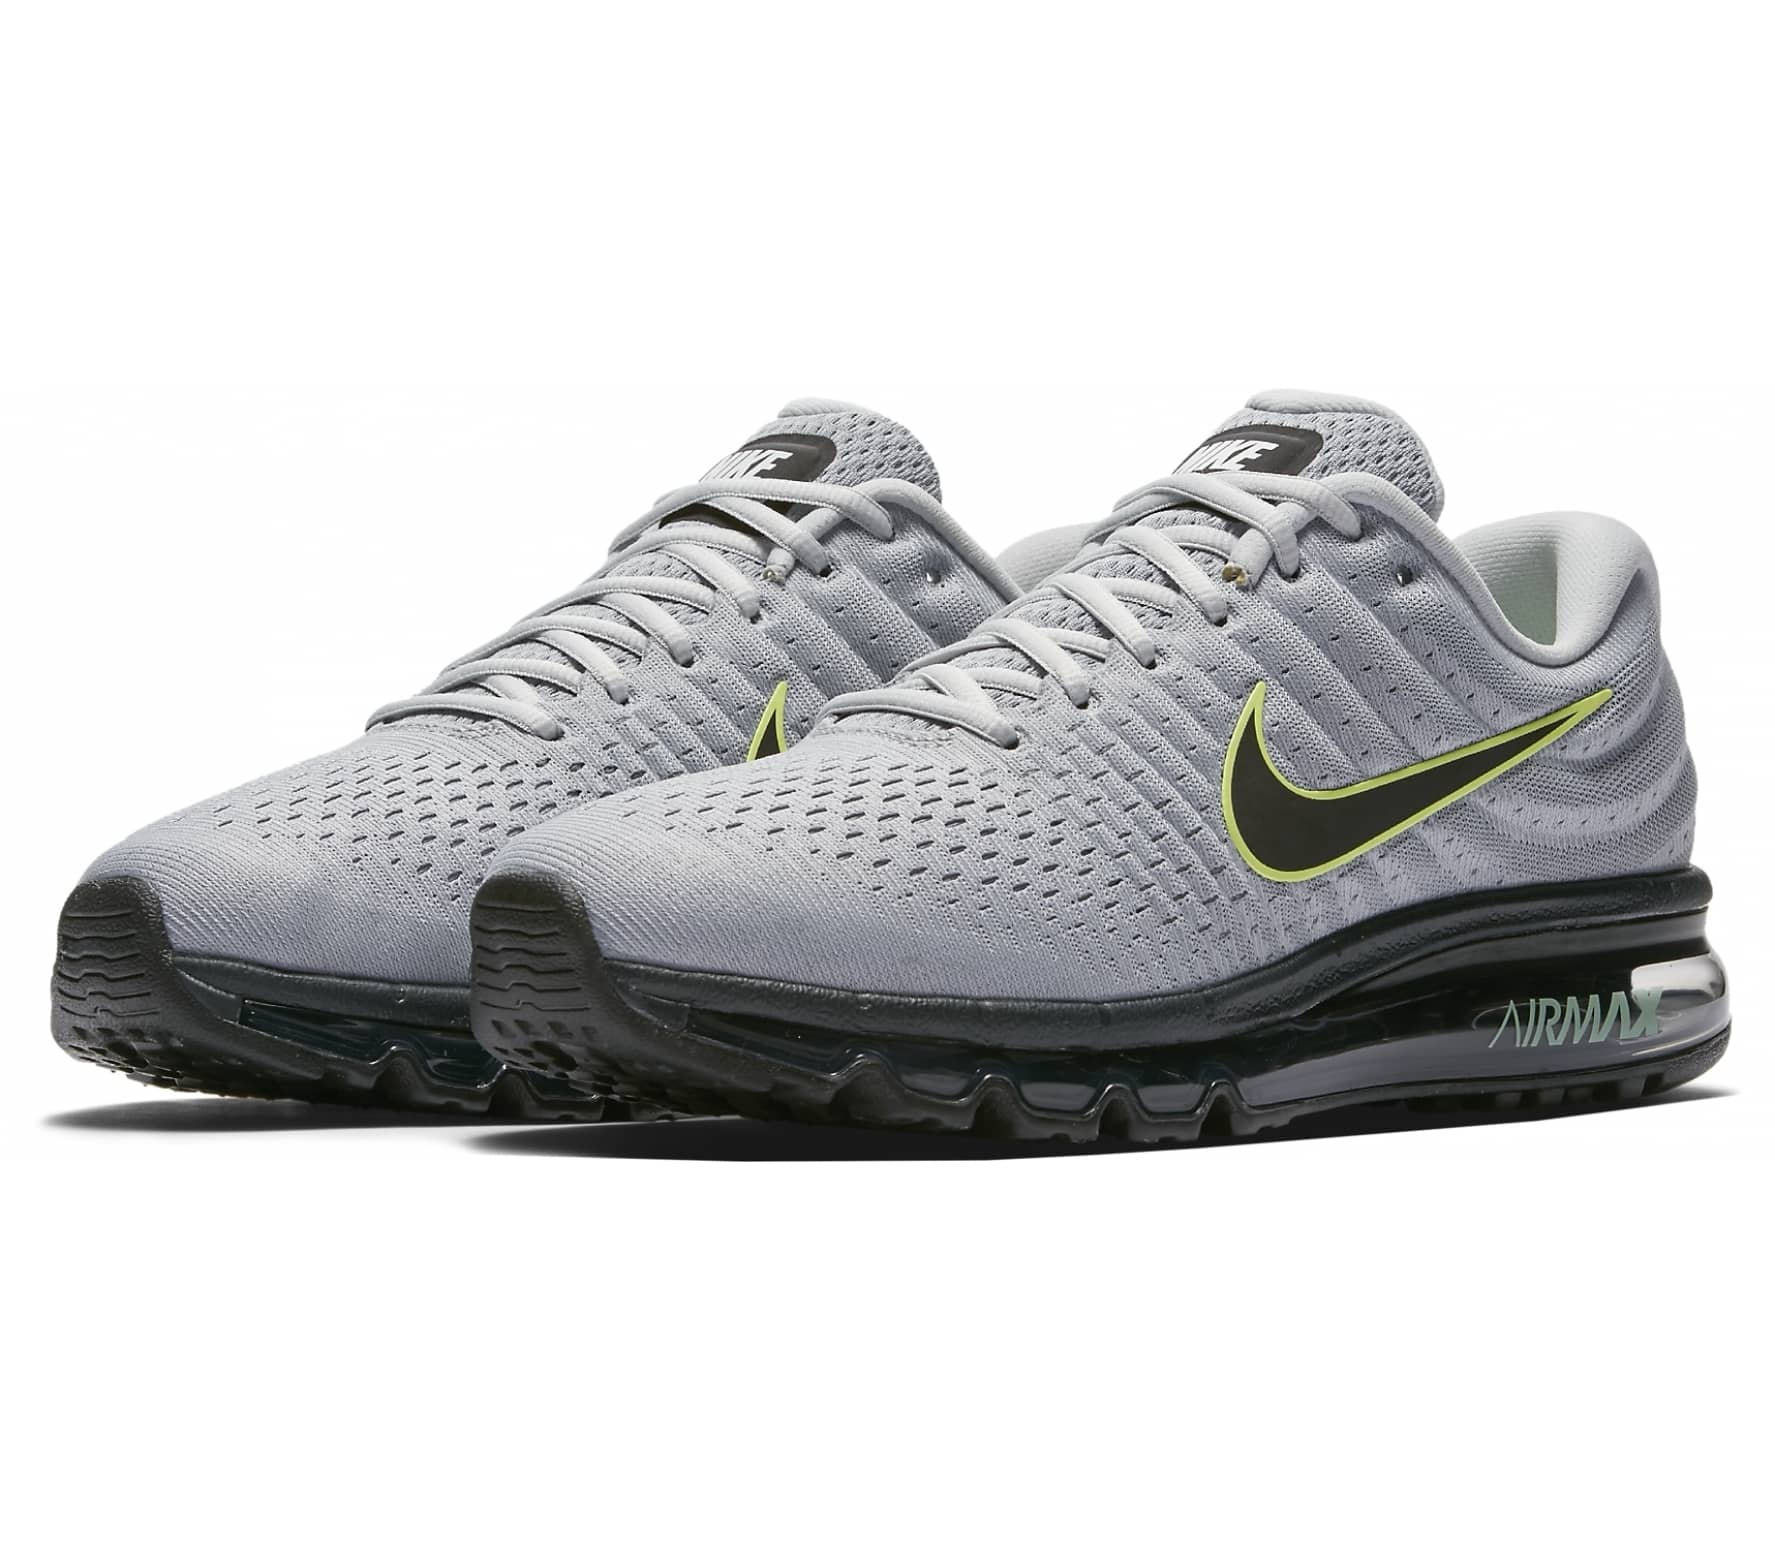 huge selection of 8a3db 4b5ca Nike - Air Max 2017 Herren Laufschuh (grau schwarz)